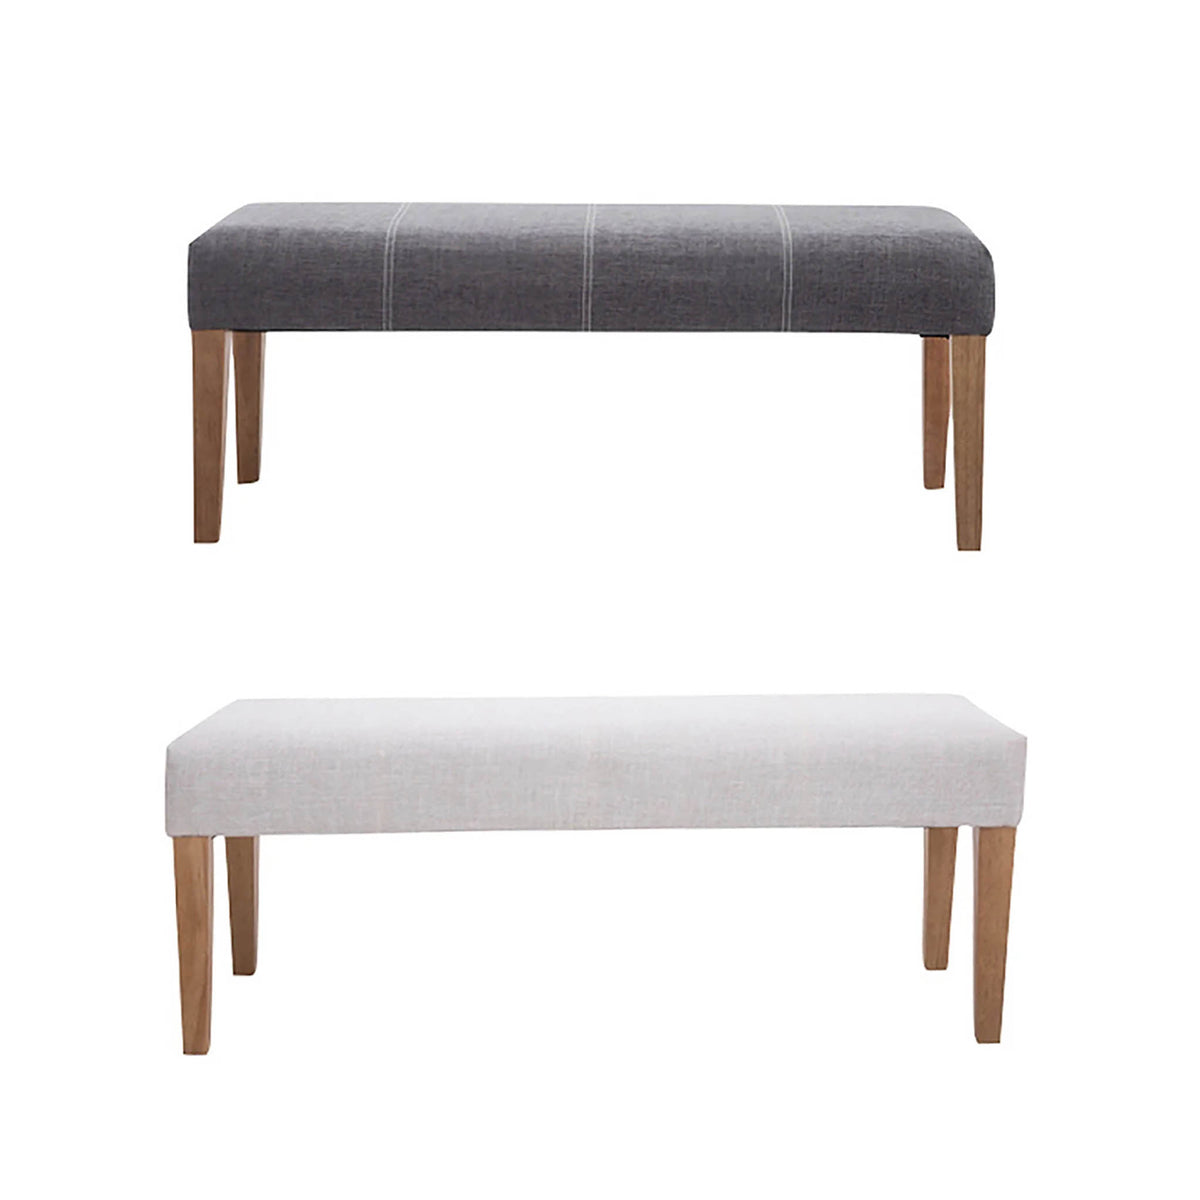 Zara Fabric Bedroom Bench by Roseland Furniture